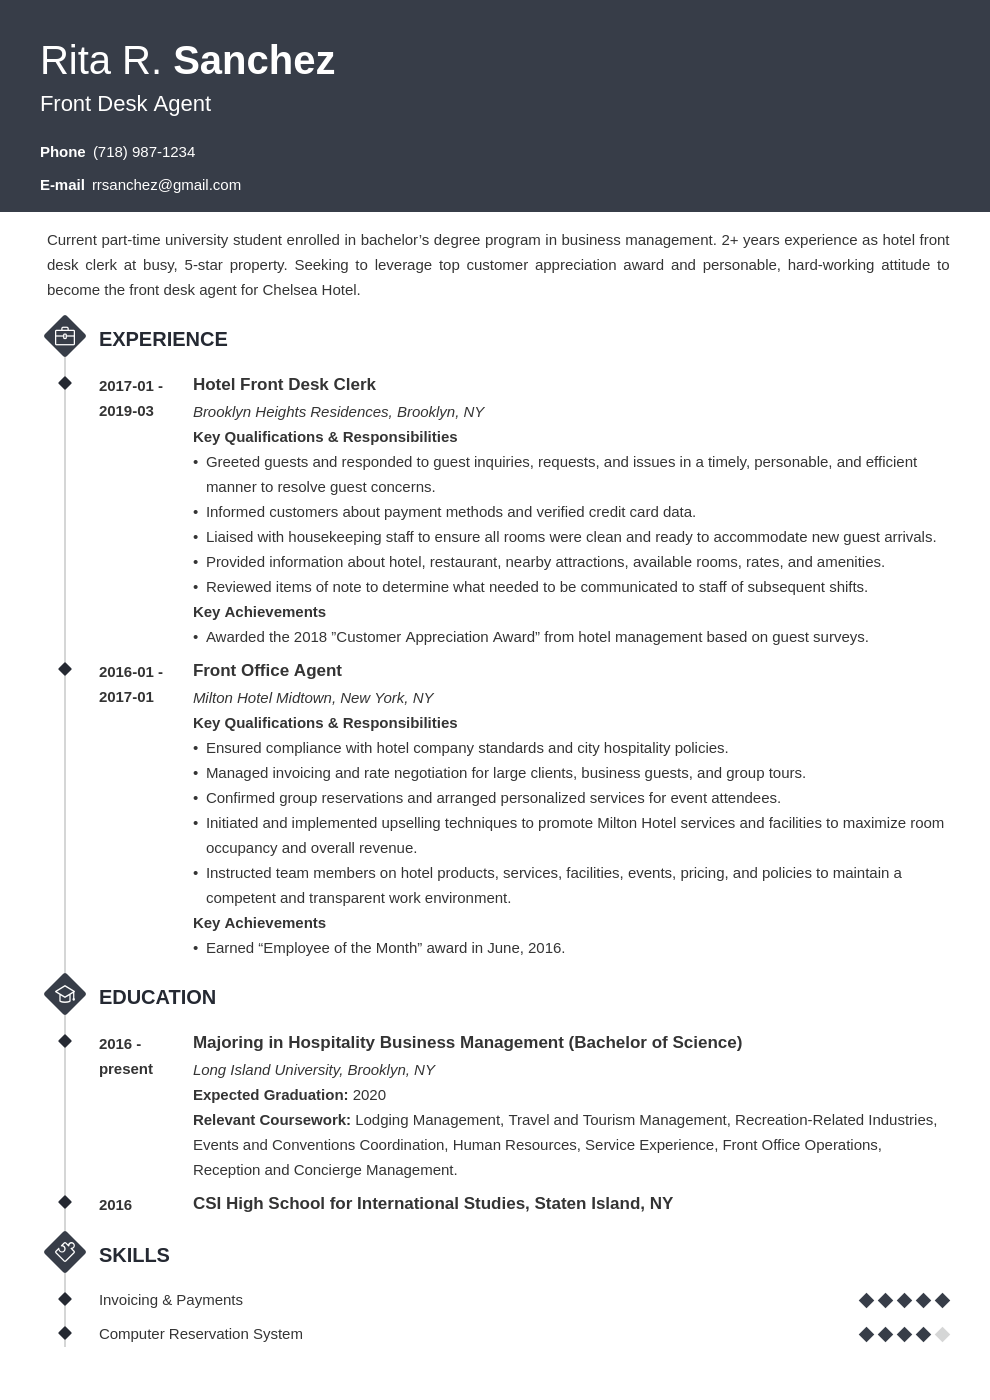 front desk resume example template diamond